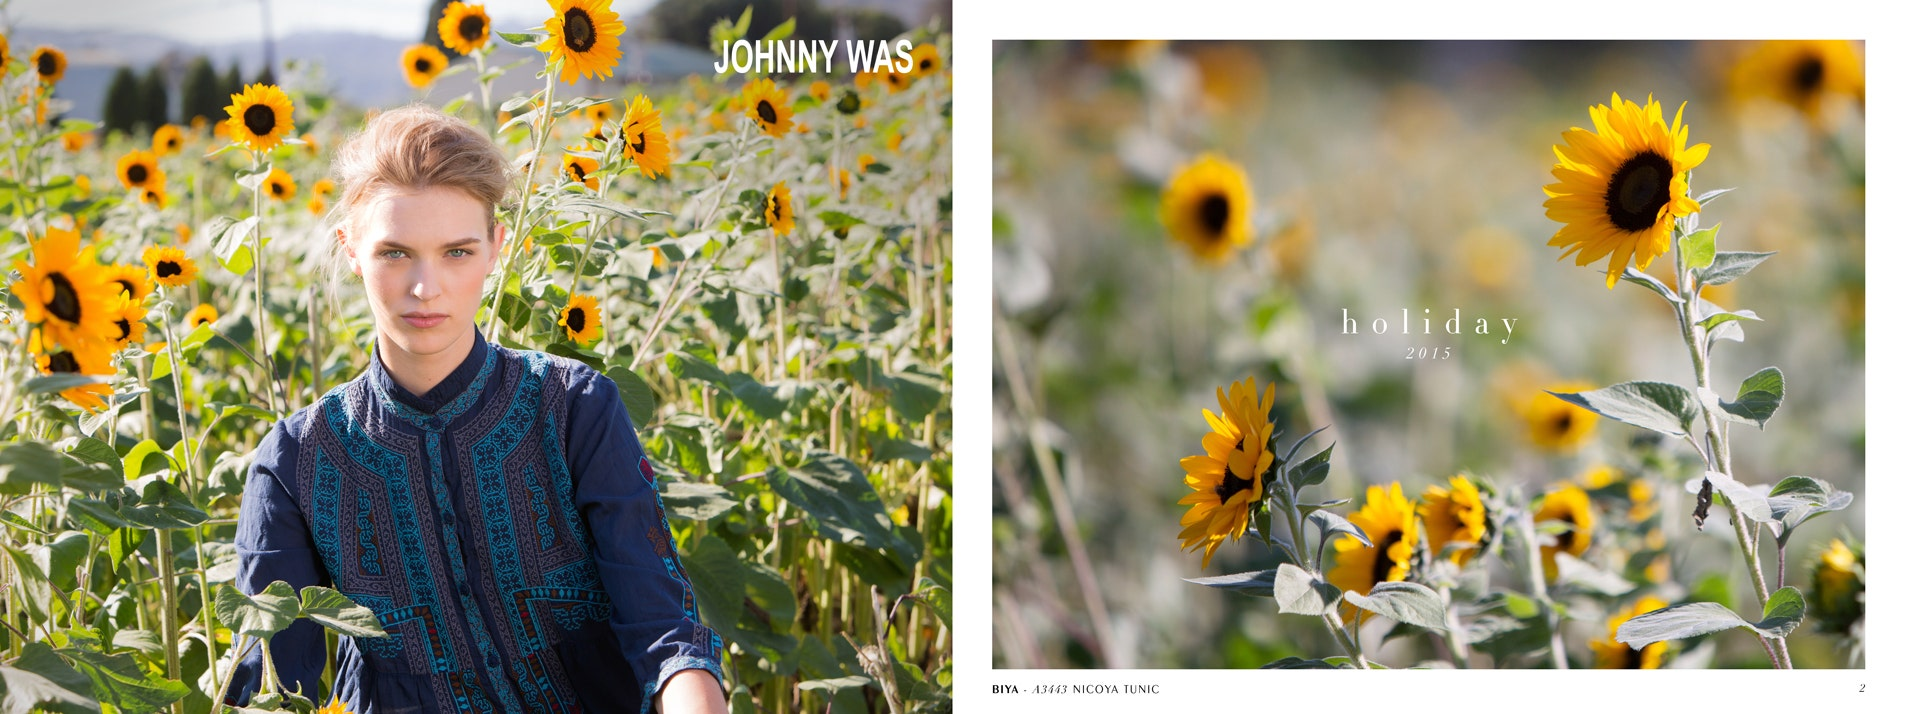 Johnny Was Clothing Holiday 2015 Lookbook